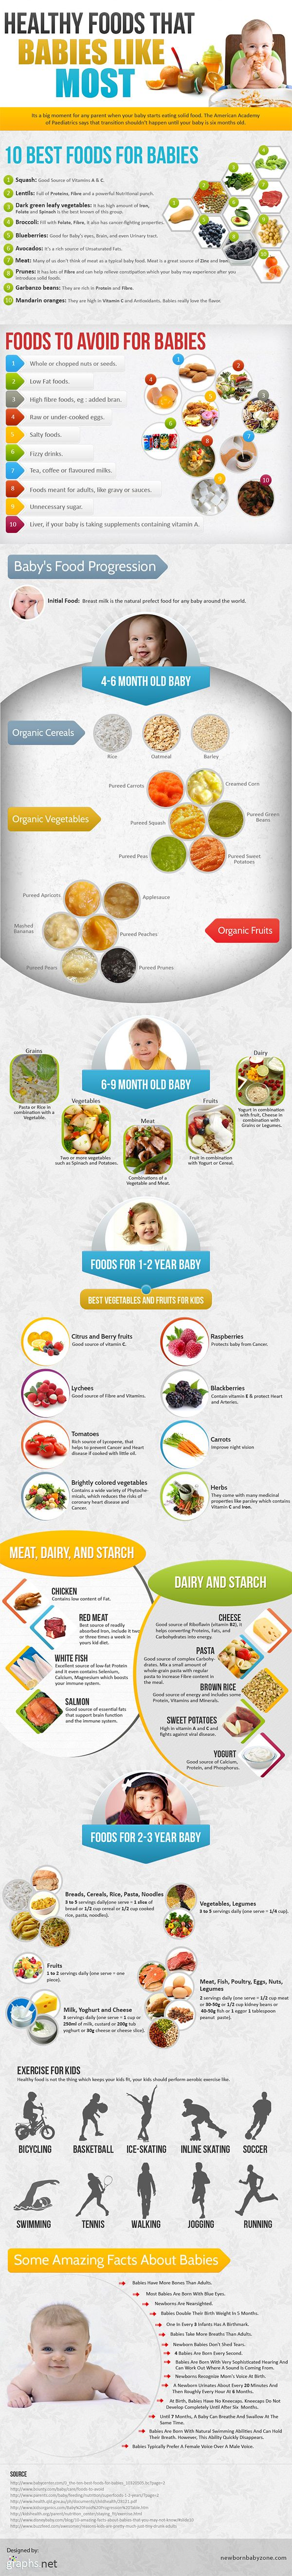 Healthy Foods for babies